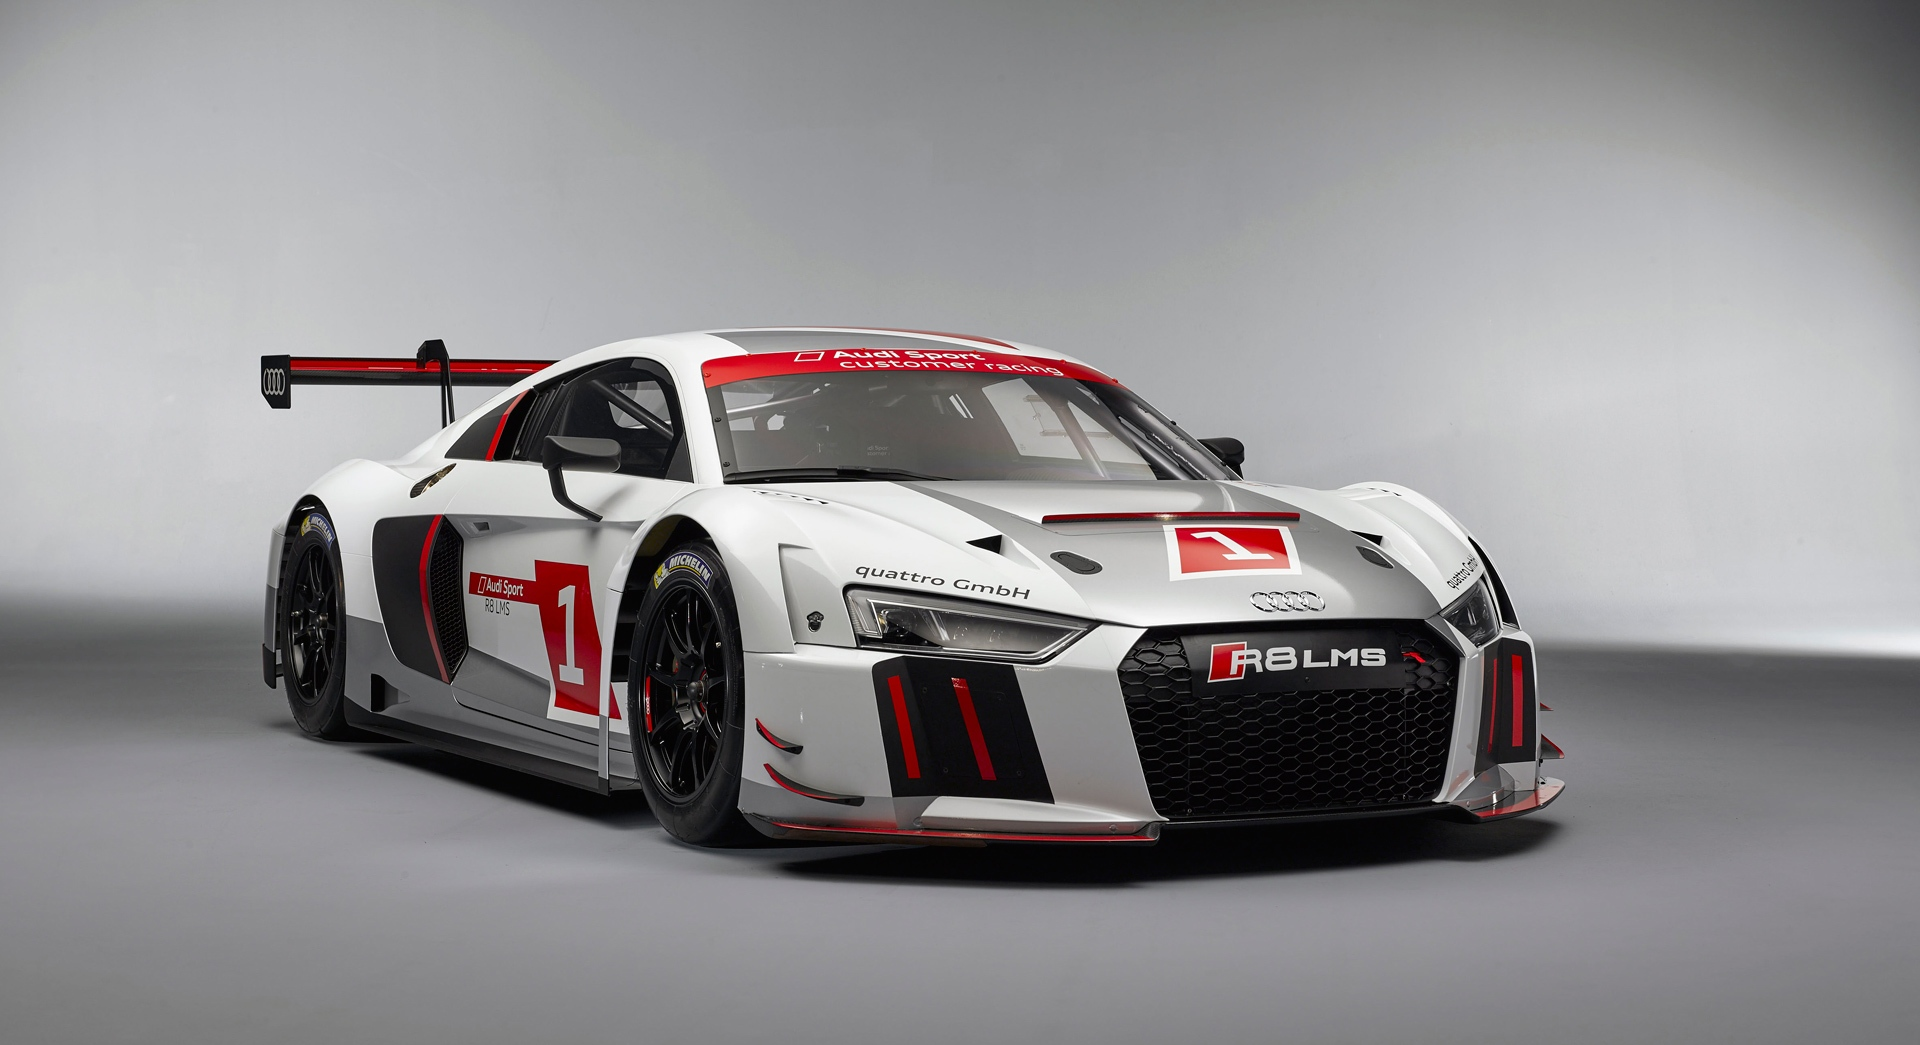 3d Wallpaper Mario Audi R8 Lms Back Hd Desktop Wallpapers 4k Hd